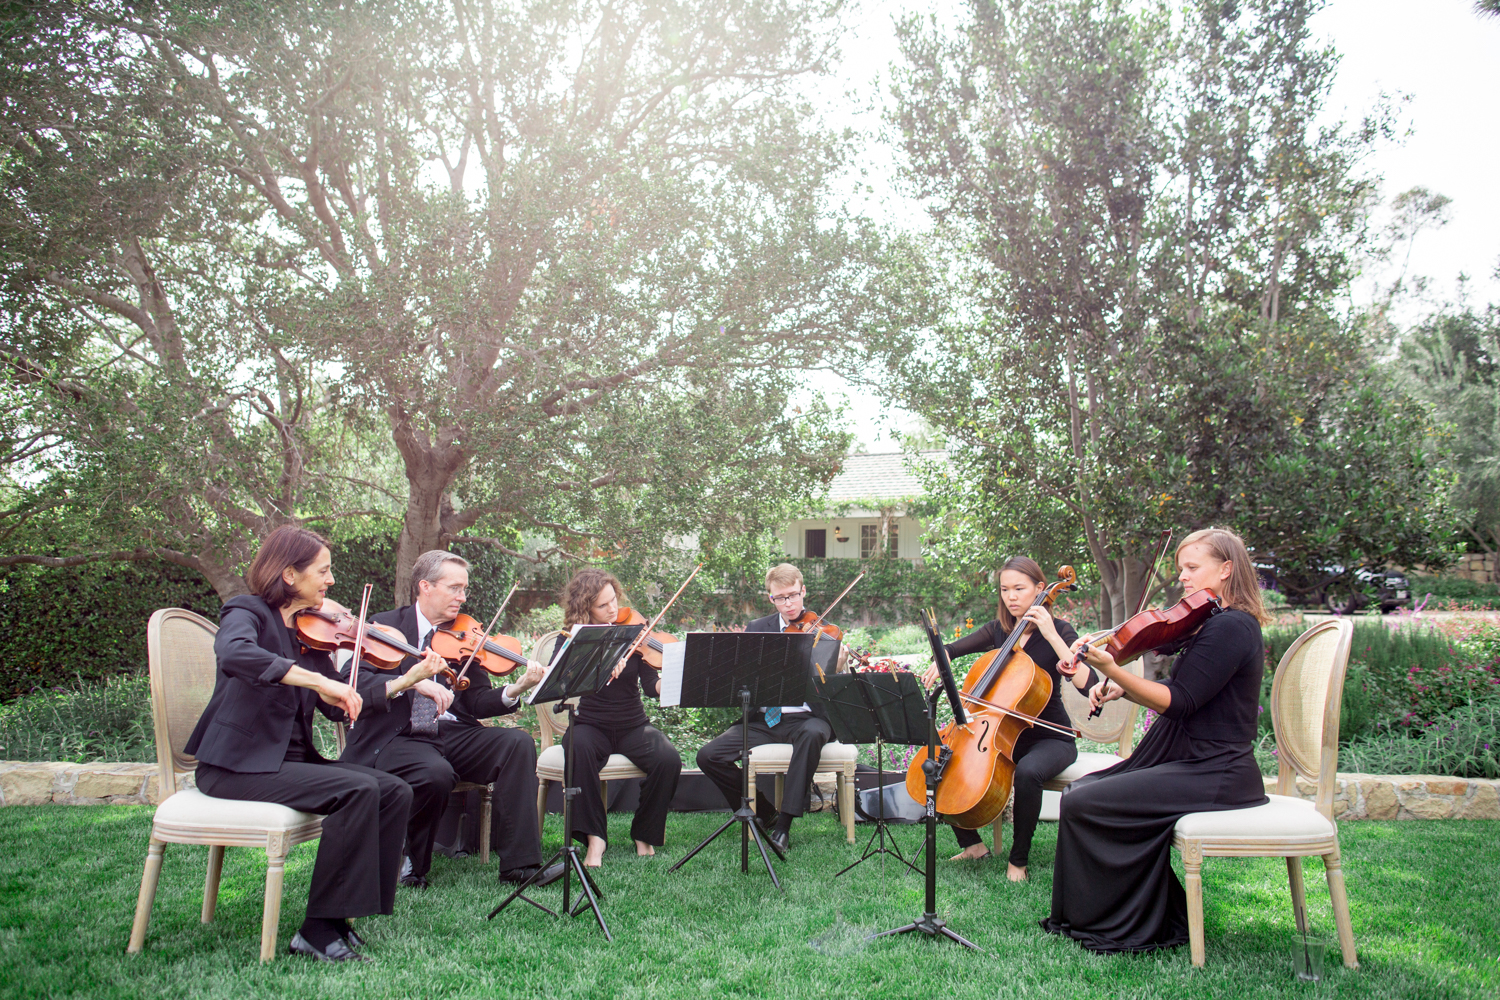 13 San Ysidro Ranch Wedding Planned Joy Proctor.JPG